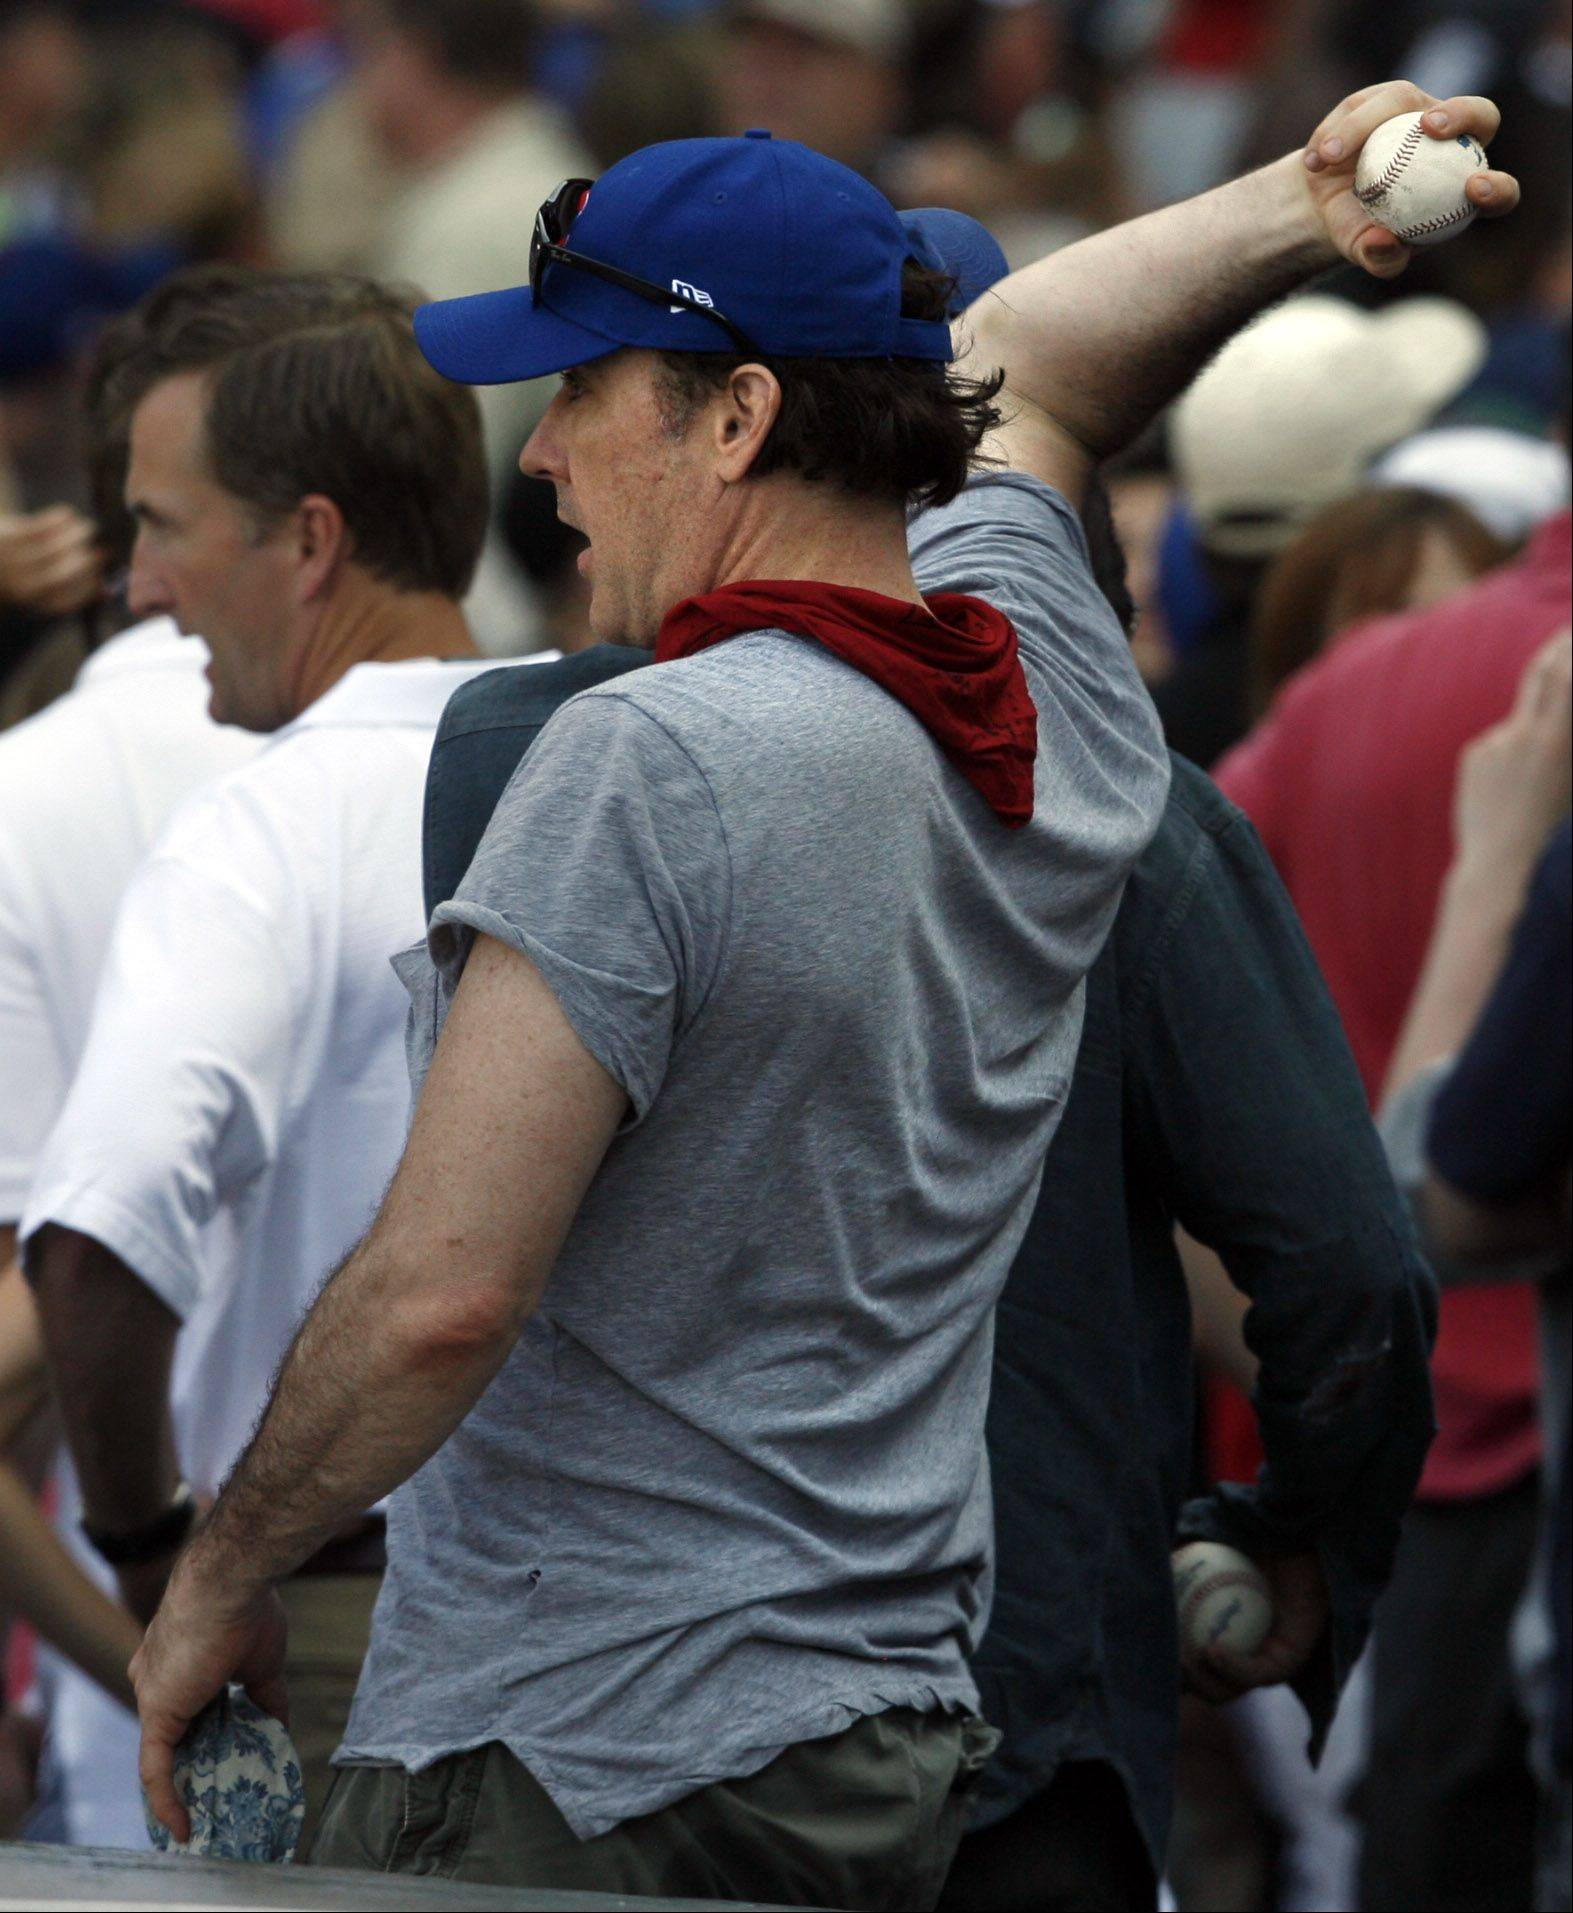 Actor John Cusack pretend to throw a ball on the field as Cubs lose 1-0 against the White Sox at Wrigley Field on Saturday.